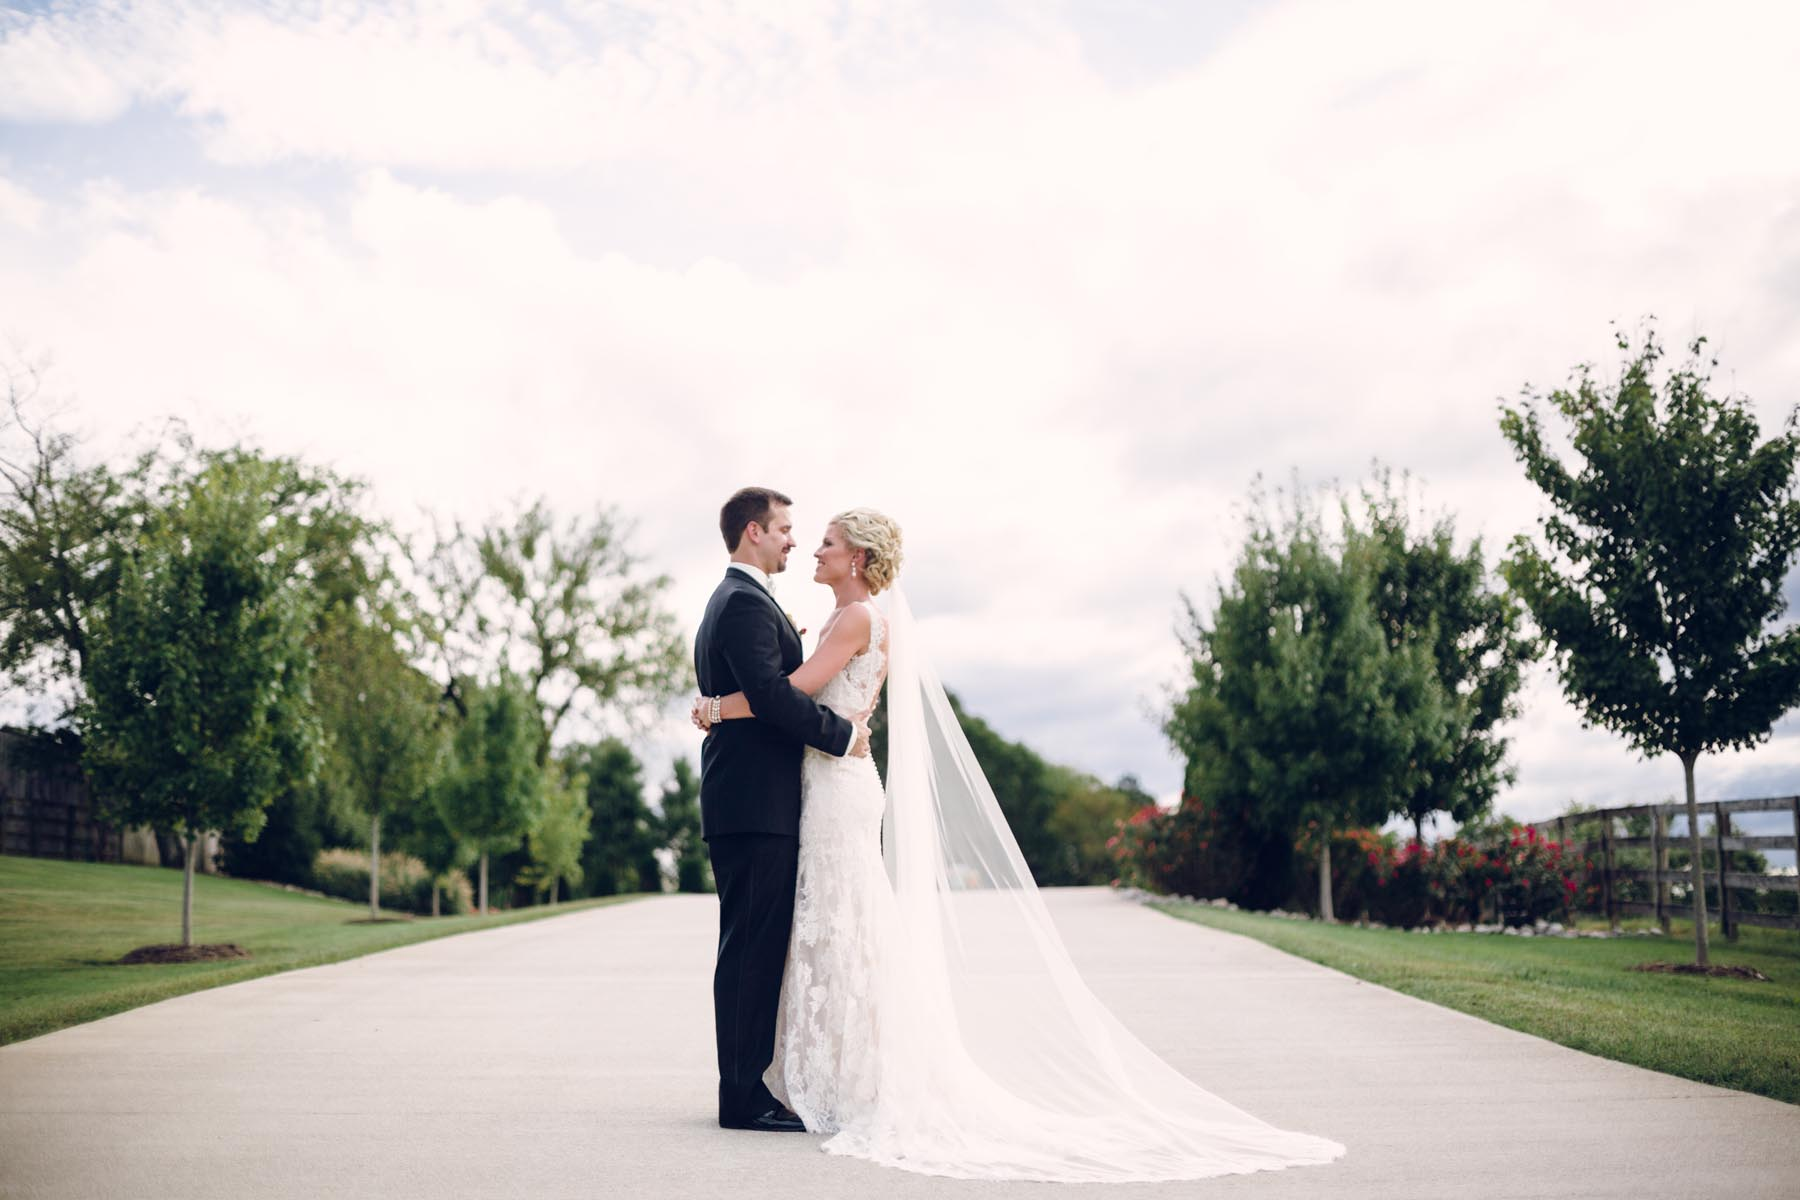 Wedding Dresses in Knoxville Bridal Salons in Knoxville, Knoxville ...